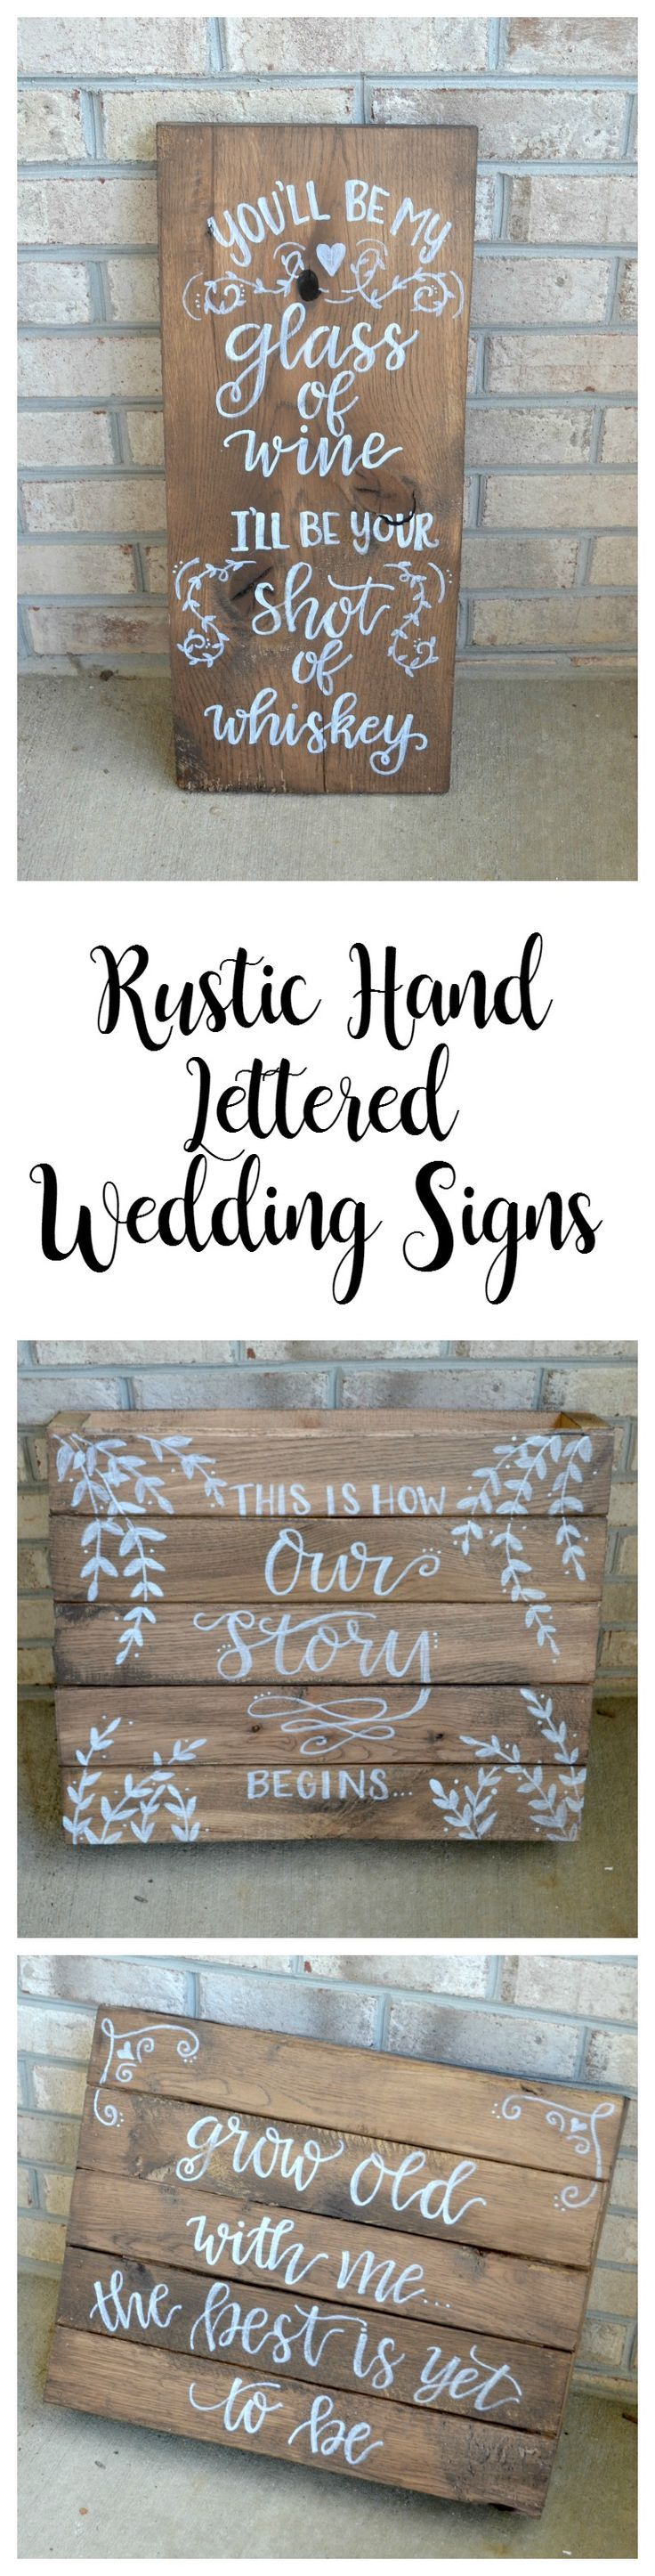 Rustic Hand Lettered Wedding Signs - One Artsy Mama